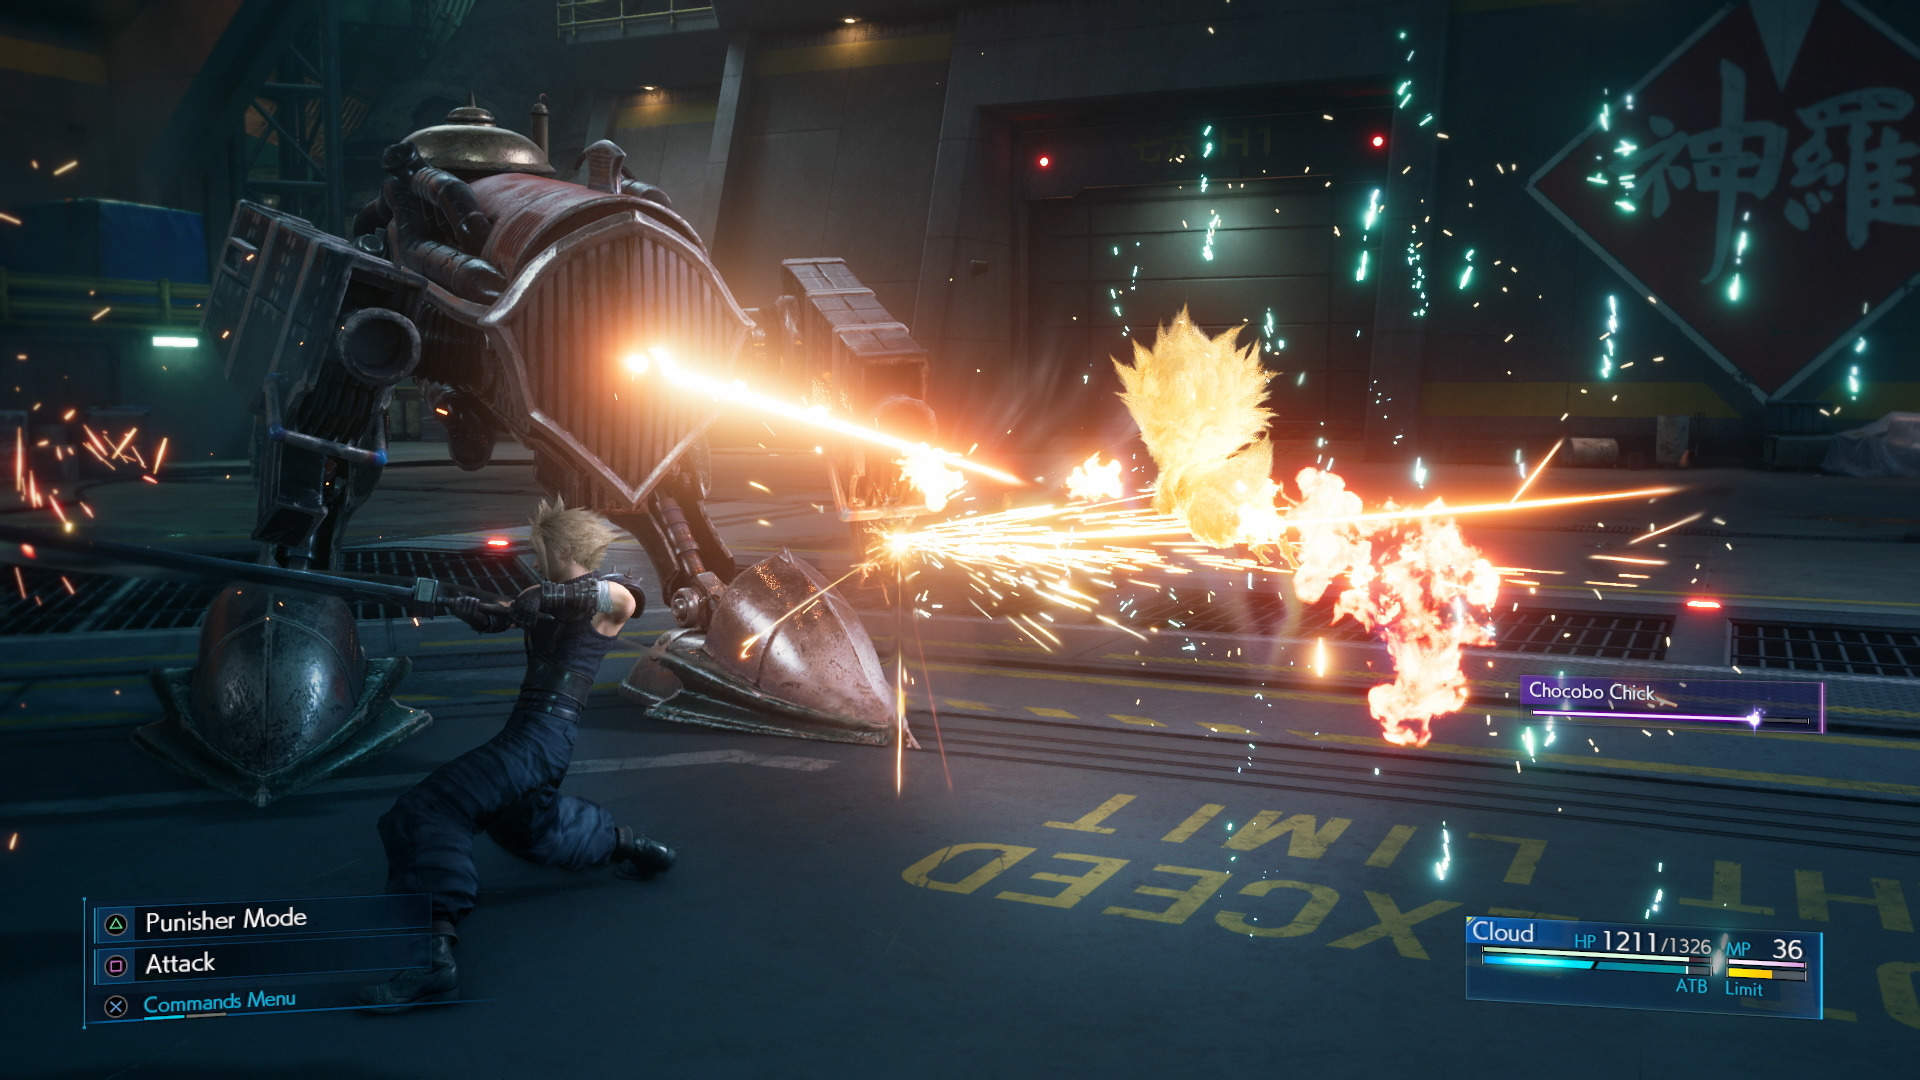 FF7, Final Fantasy 7 Remake, FF 7 Remake, Final Fantasy, Final Fantasy VII Remake, Square Enix, PS4, PlayStation 4, release date, gameplay, features, price, pre-order, Japan, Europe, US, North America, Australia, news, update, new details, new screenshots, Red XIII, Hojo, Tifa Lockhart, Tifa's battle abilities, Materia and Weapons, Mercenary Quests, Battle Report, summons, Locations, environments